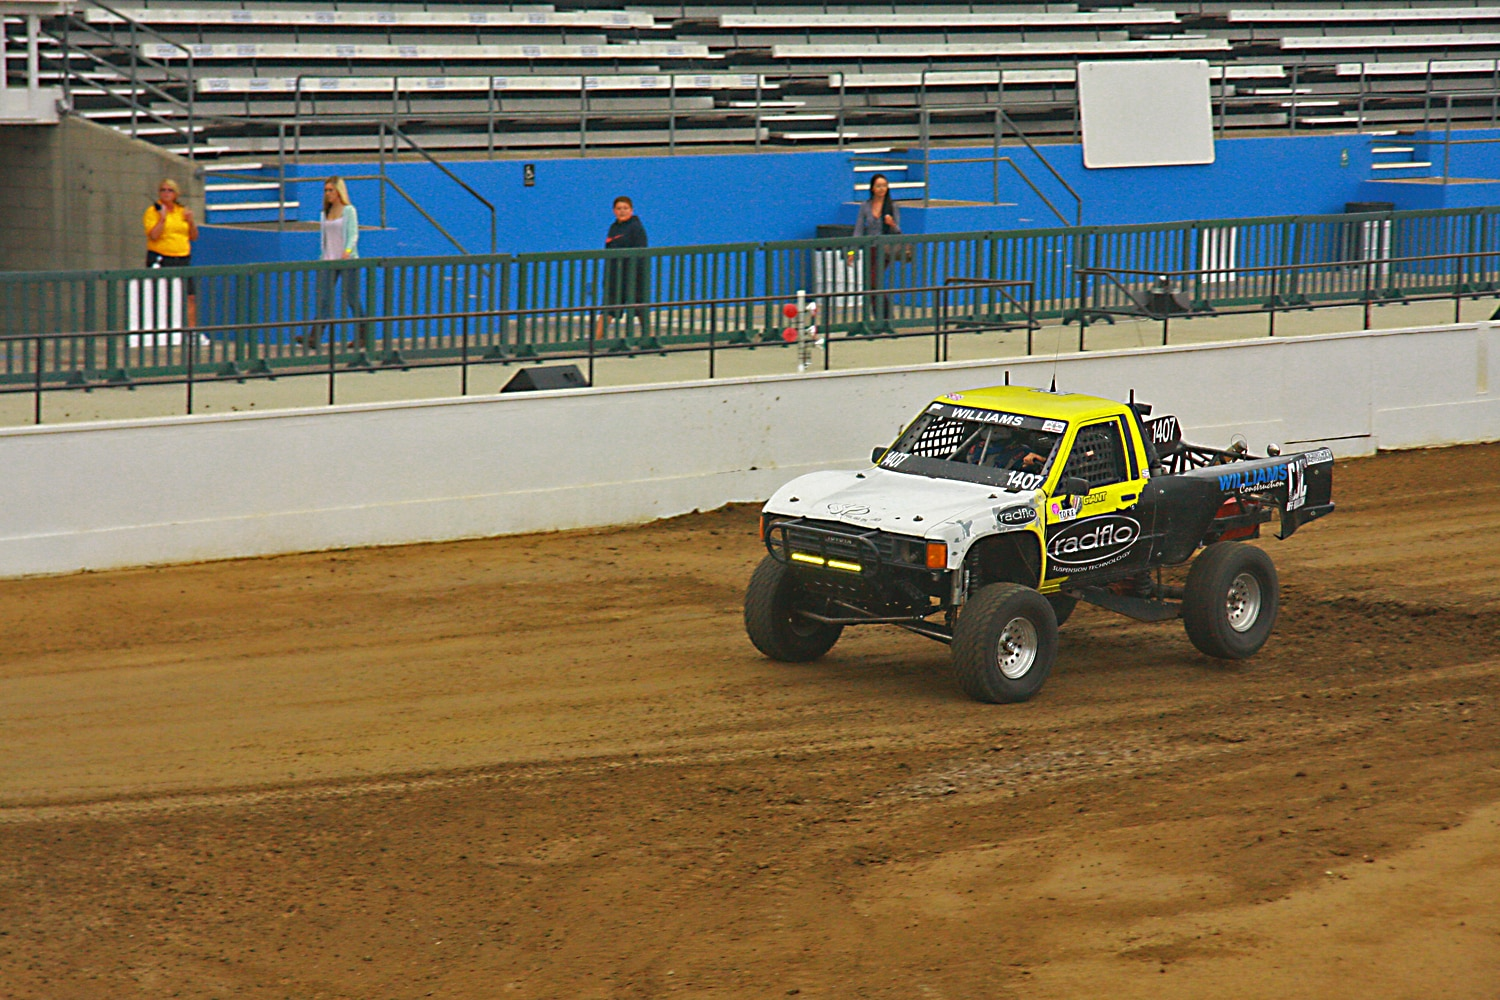 Off Road Race Truck   40  Toyota Prerunner racing